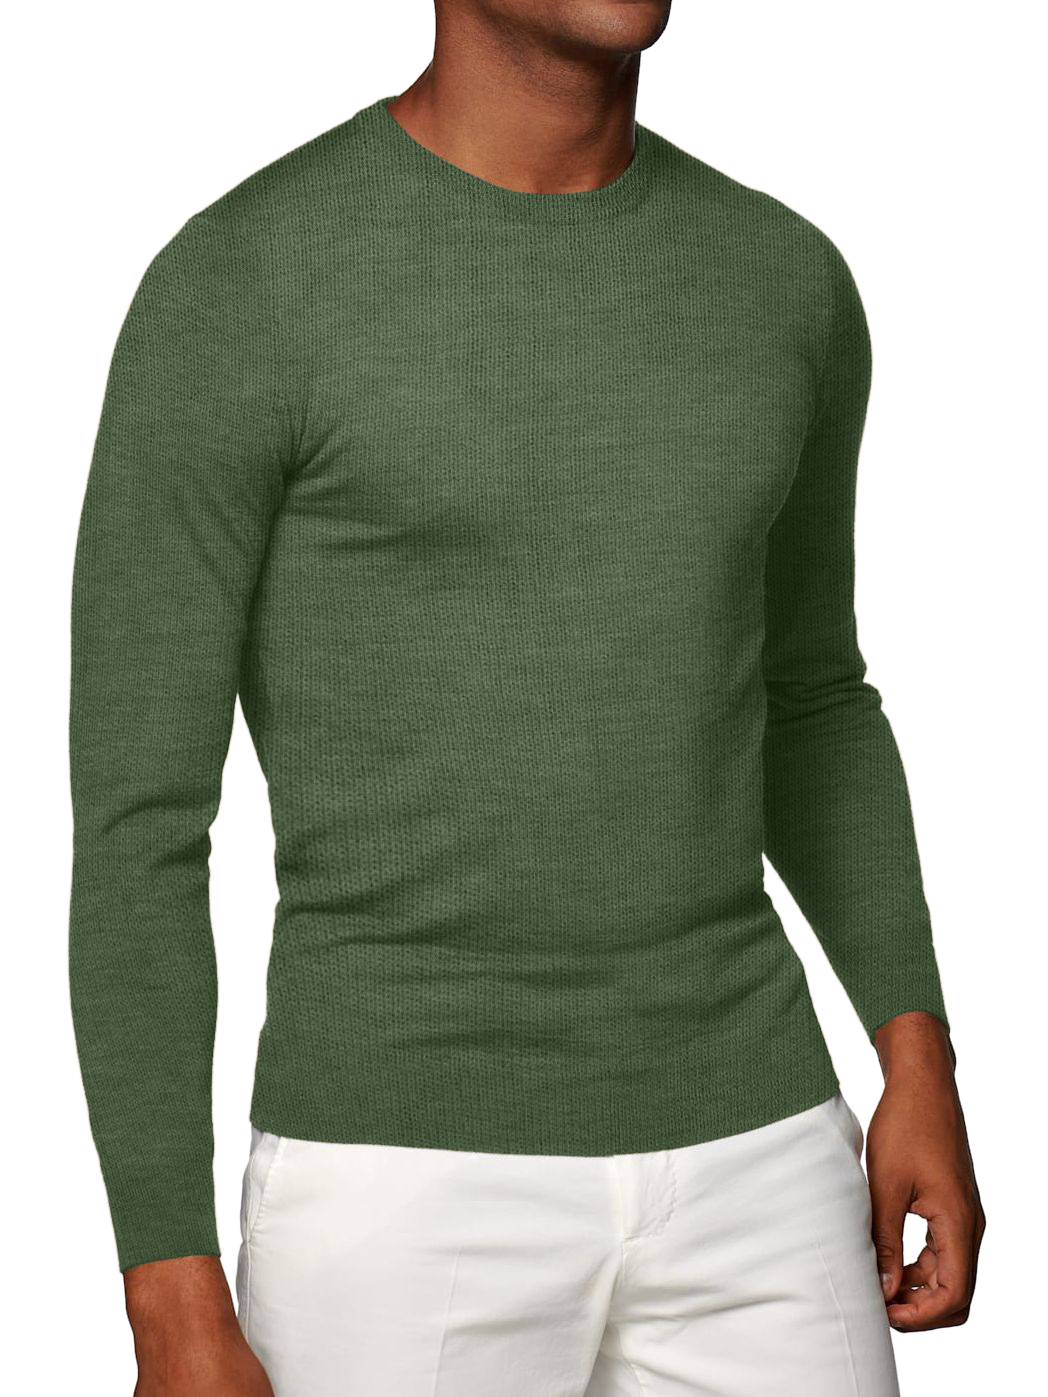 Olive Cashmere Crew Neck Sweater